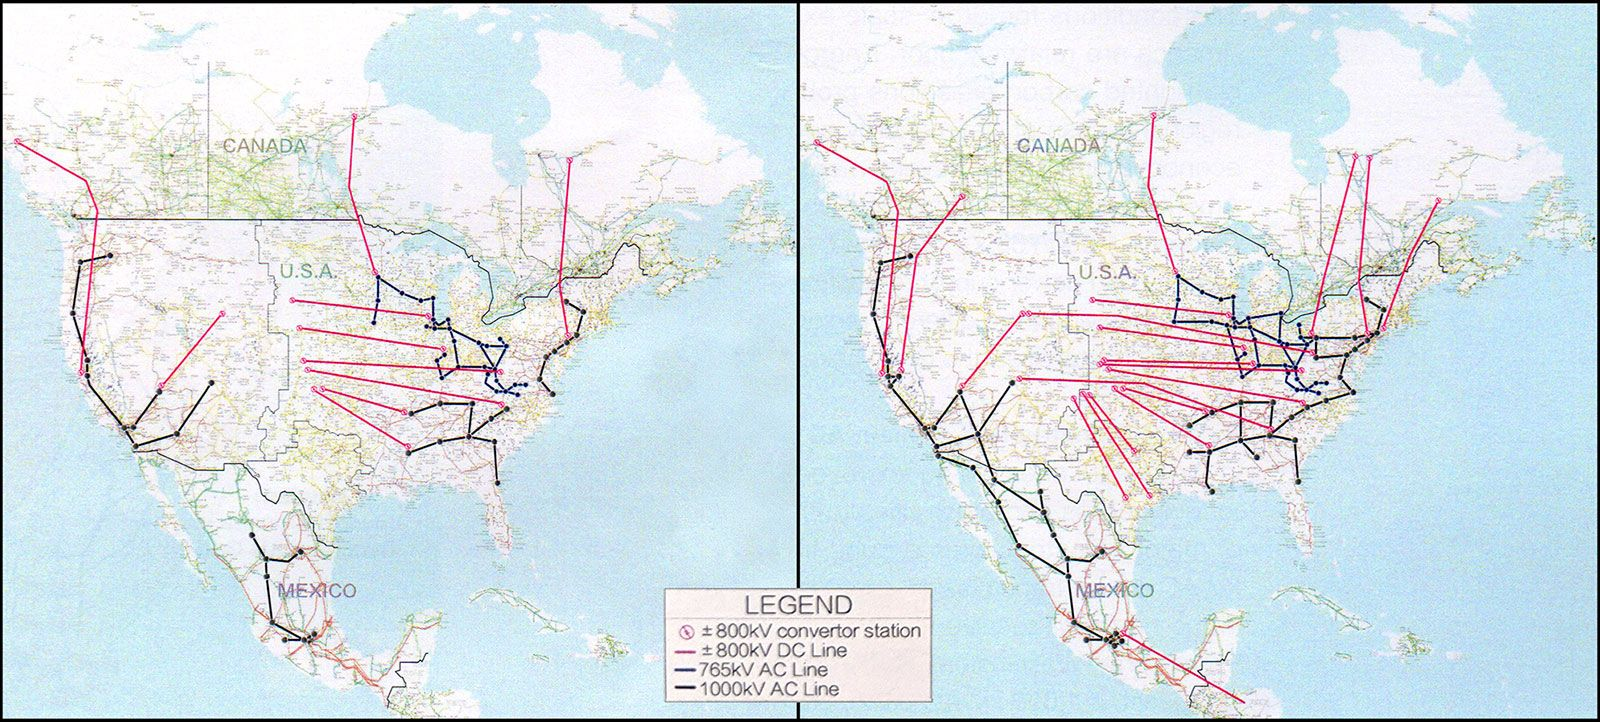 Ultrahigh-voltage grid expansions proposed by GEIDCO through 2035 (left) and 2050 (right)